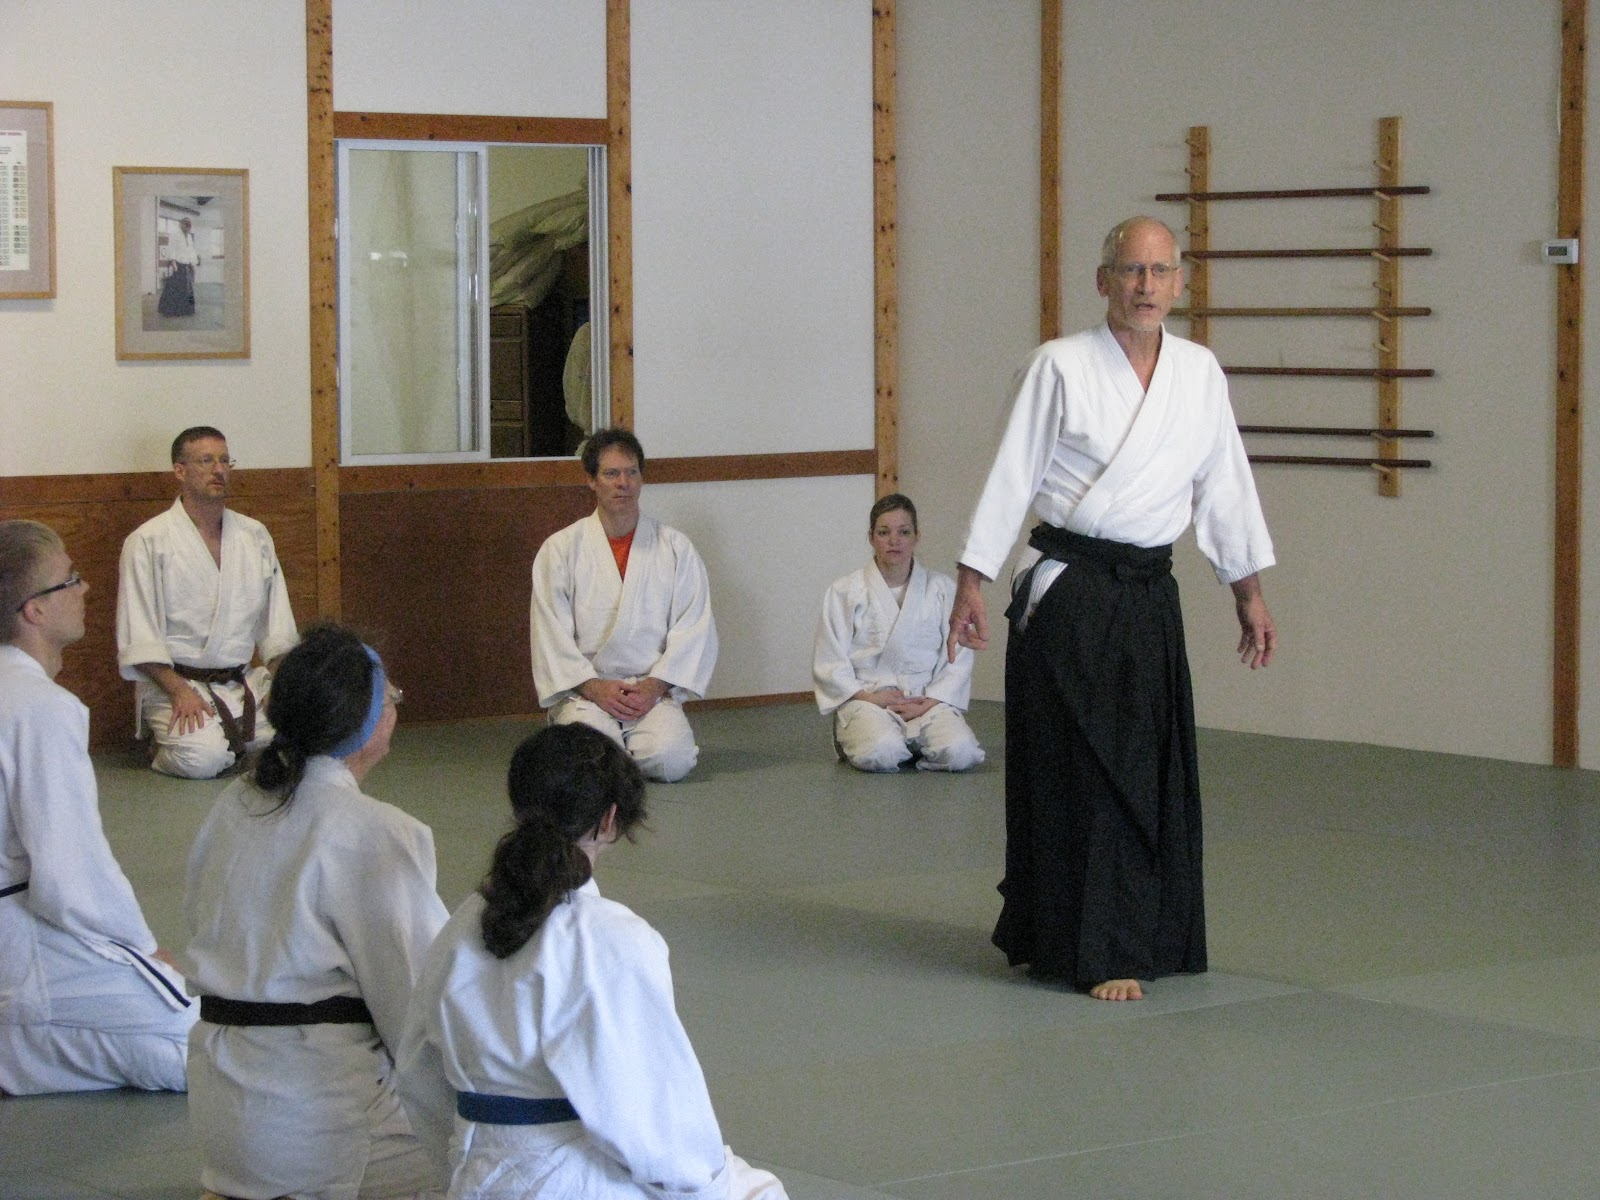 Katz Sensei Seminar Hosted by Toyoda Center Sunday May 22, 2011